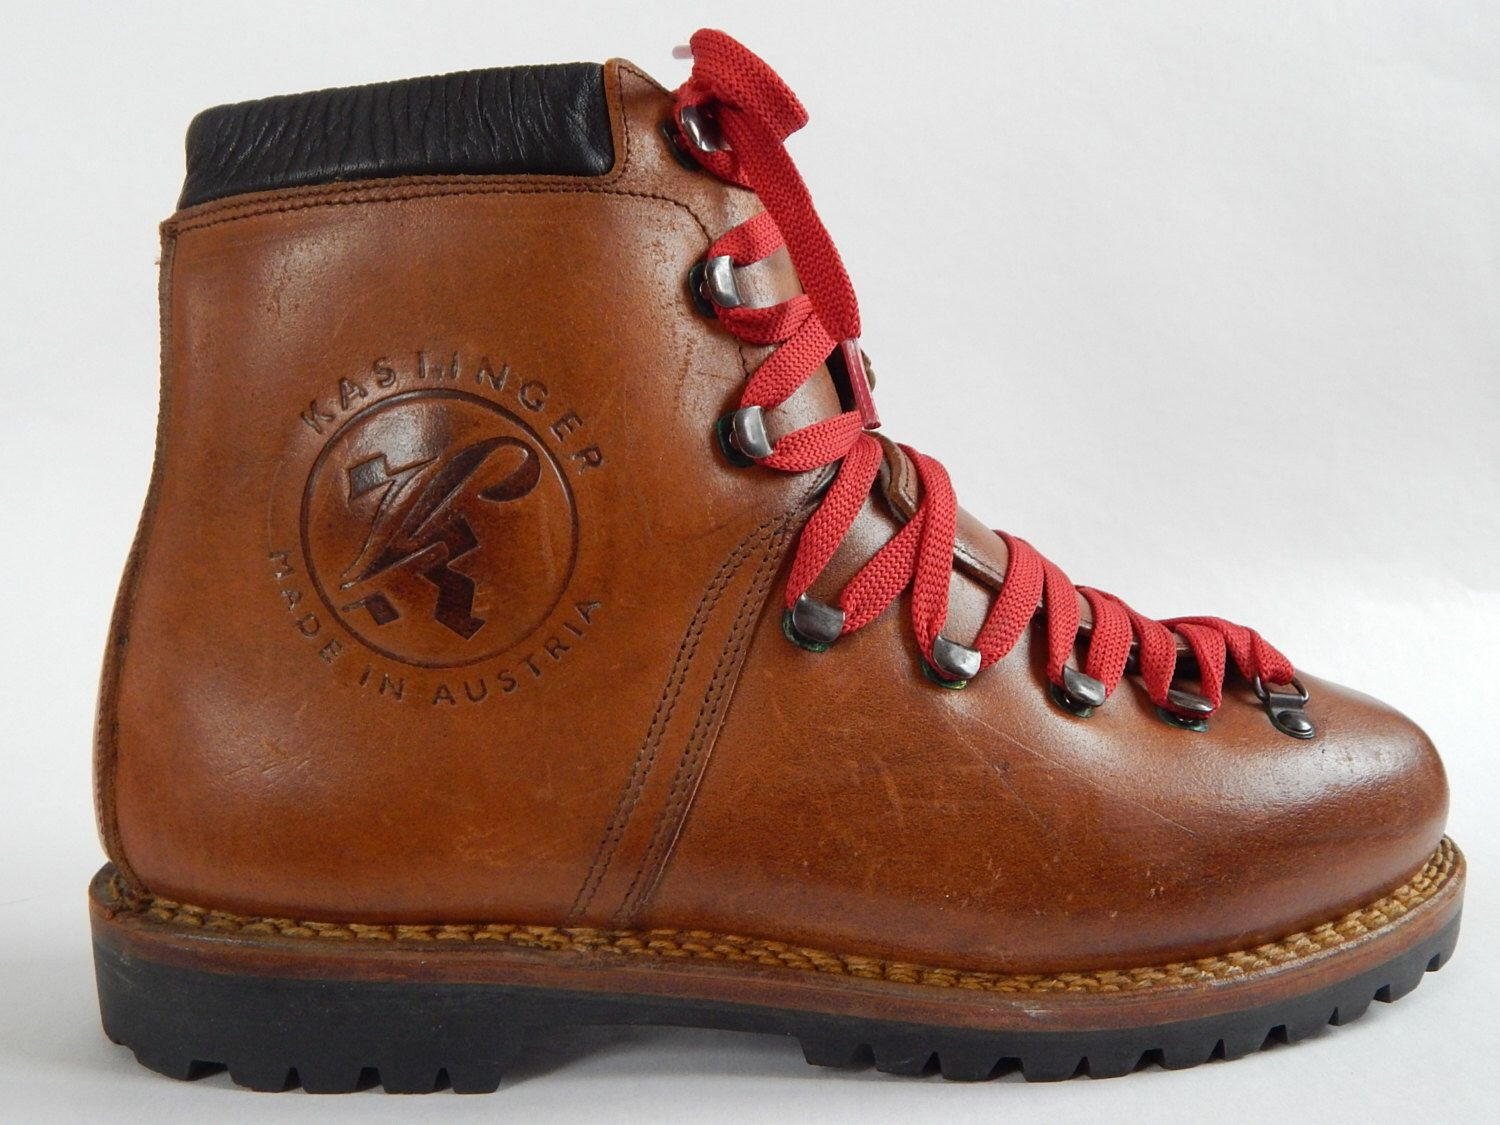 Vintage Mountaineering Boots Kastinger Leather Mountain Hiking ...